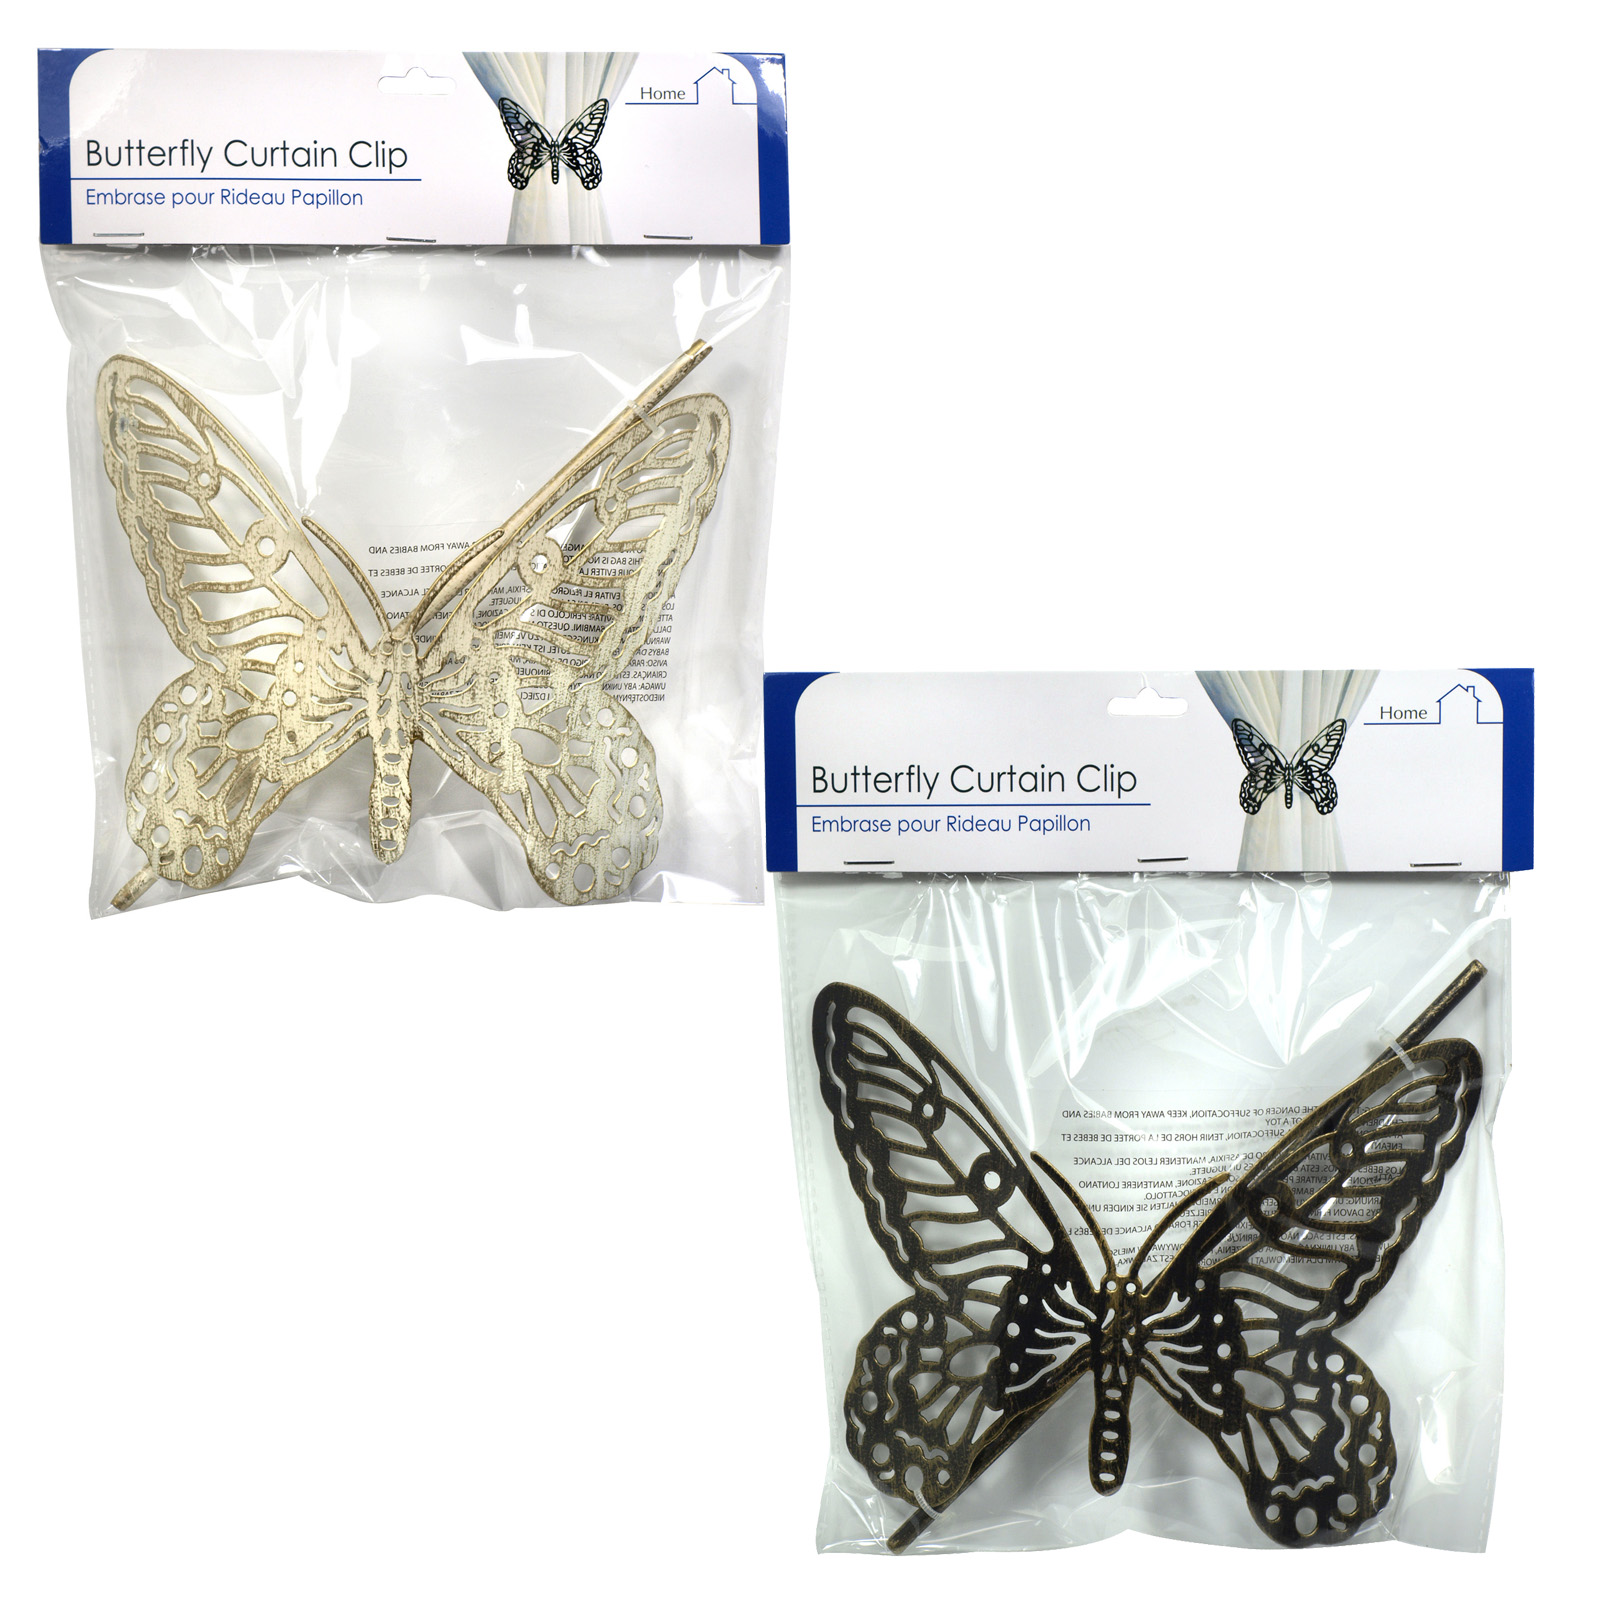 SIL METAL BUTTERFLY CURTAIN CLIP